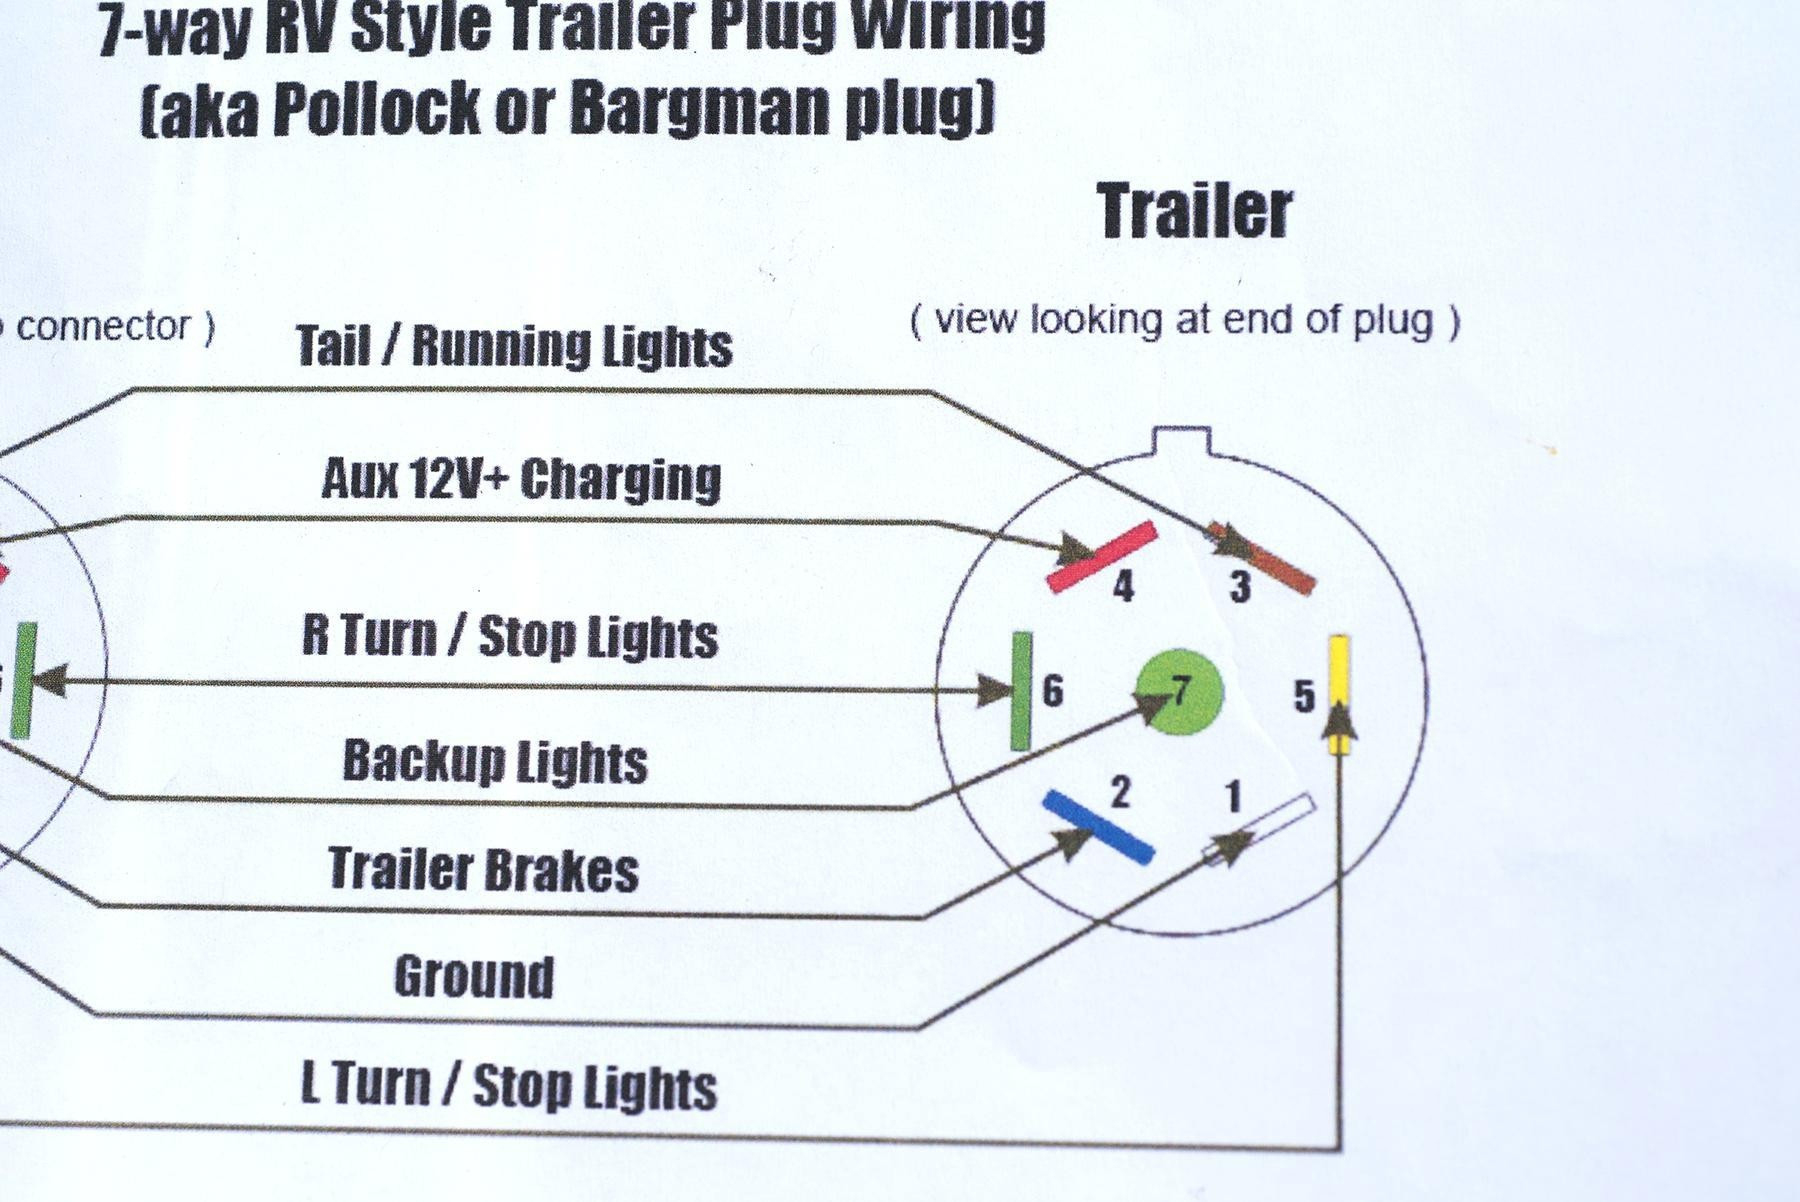 Pin Trailer Wiring Diagram Gmc Backup Lamps on gmc fuel pump wiring diagram, gmc sierra radio wiring diagram, gmc 7 pin trailer plug, gmc savana radio wiring diagram, gmc jimmy wiring diagrams,